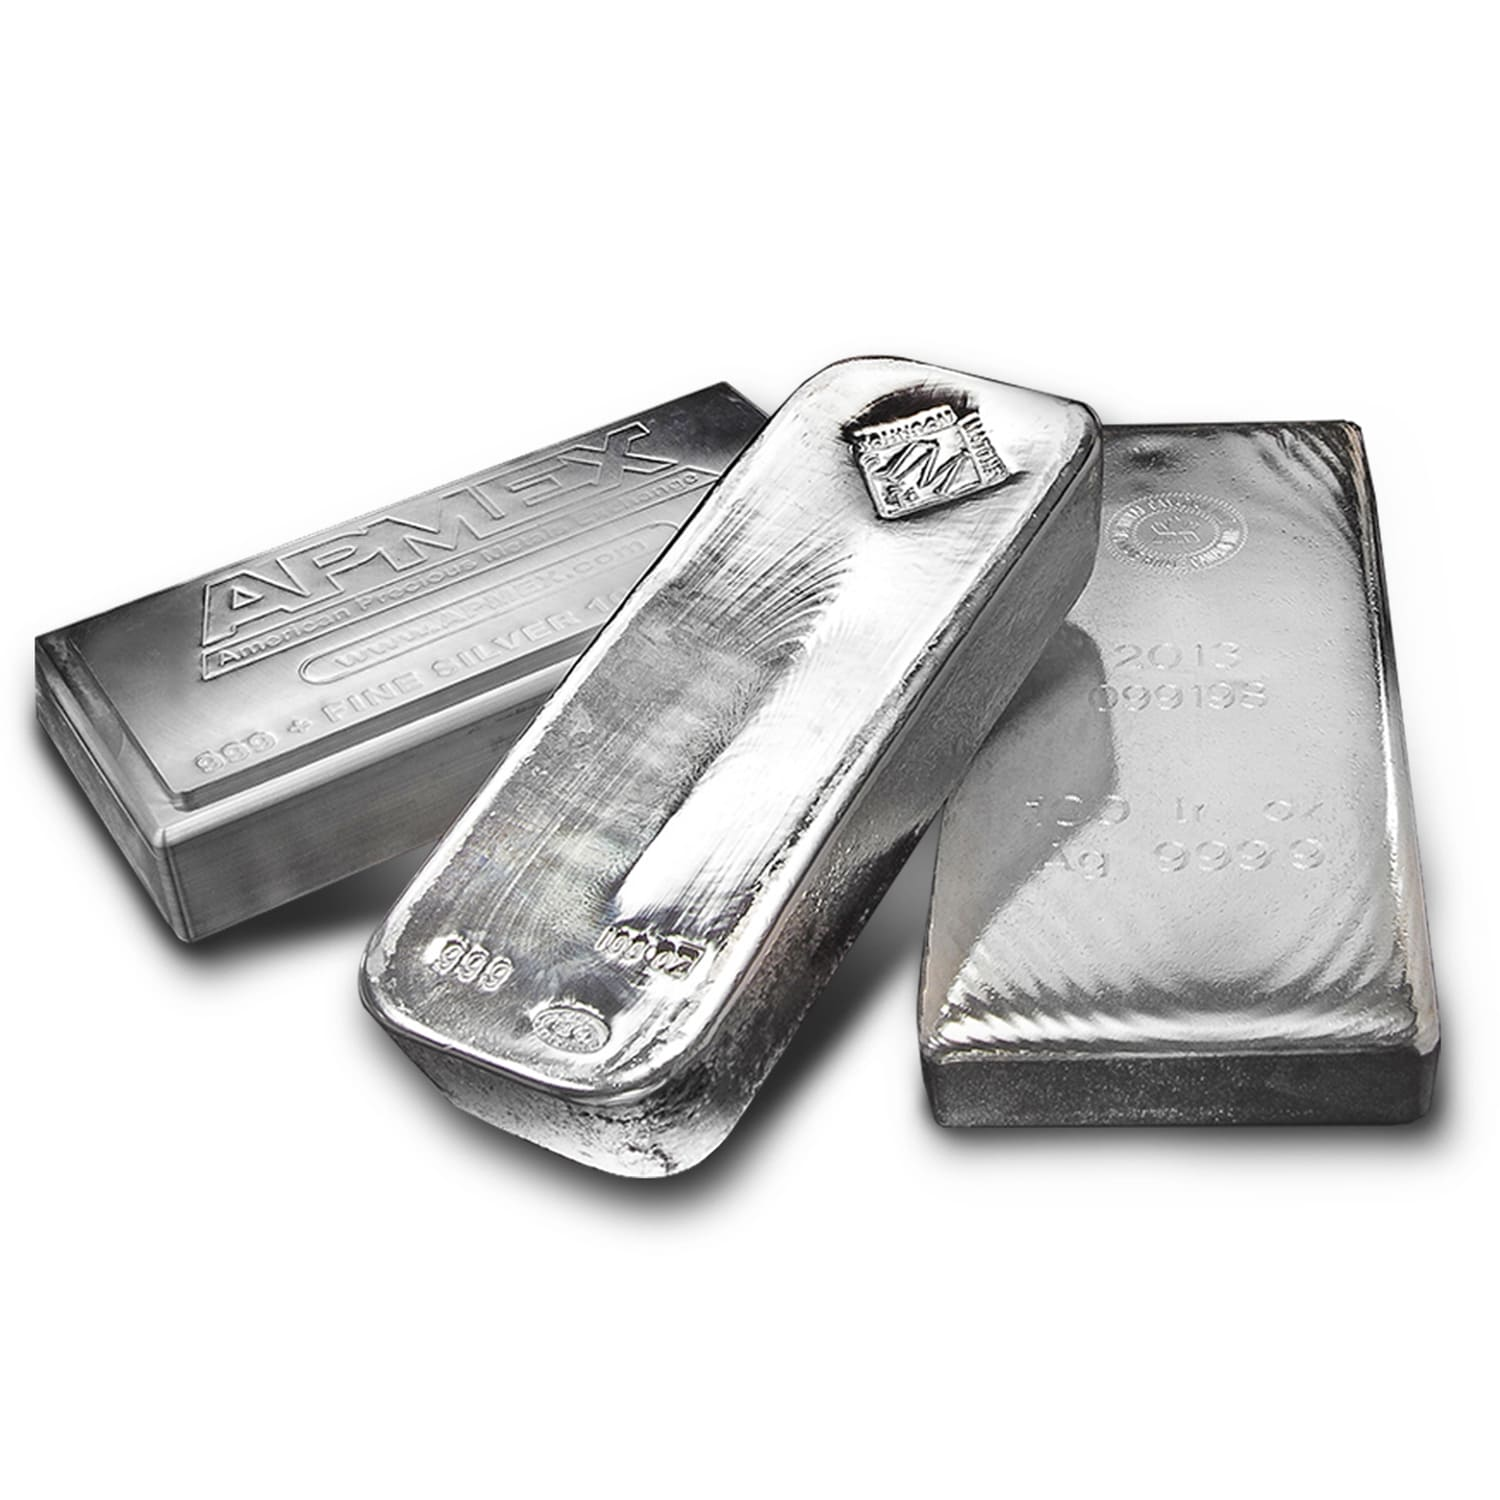 100.23 oz Silver Bars - Secondary Market